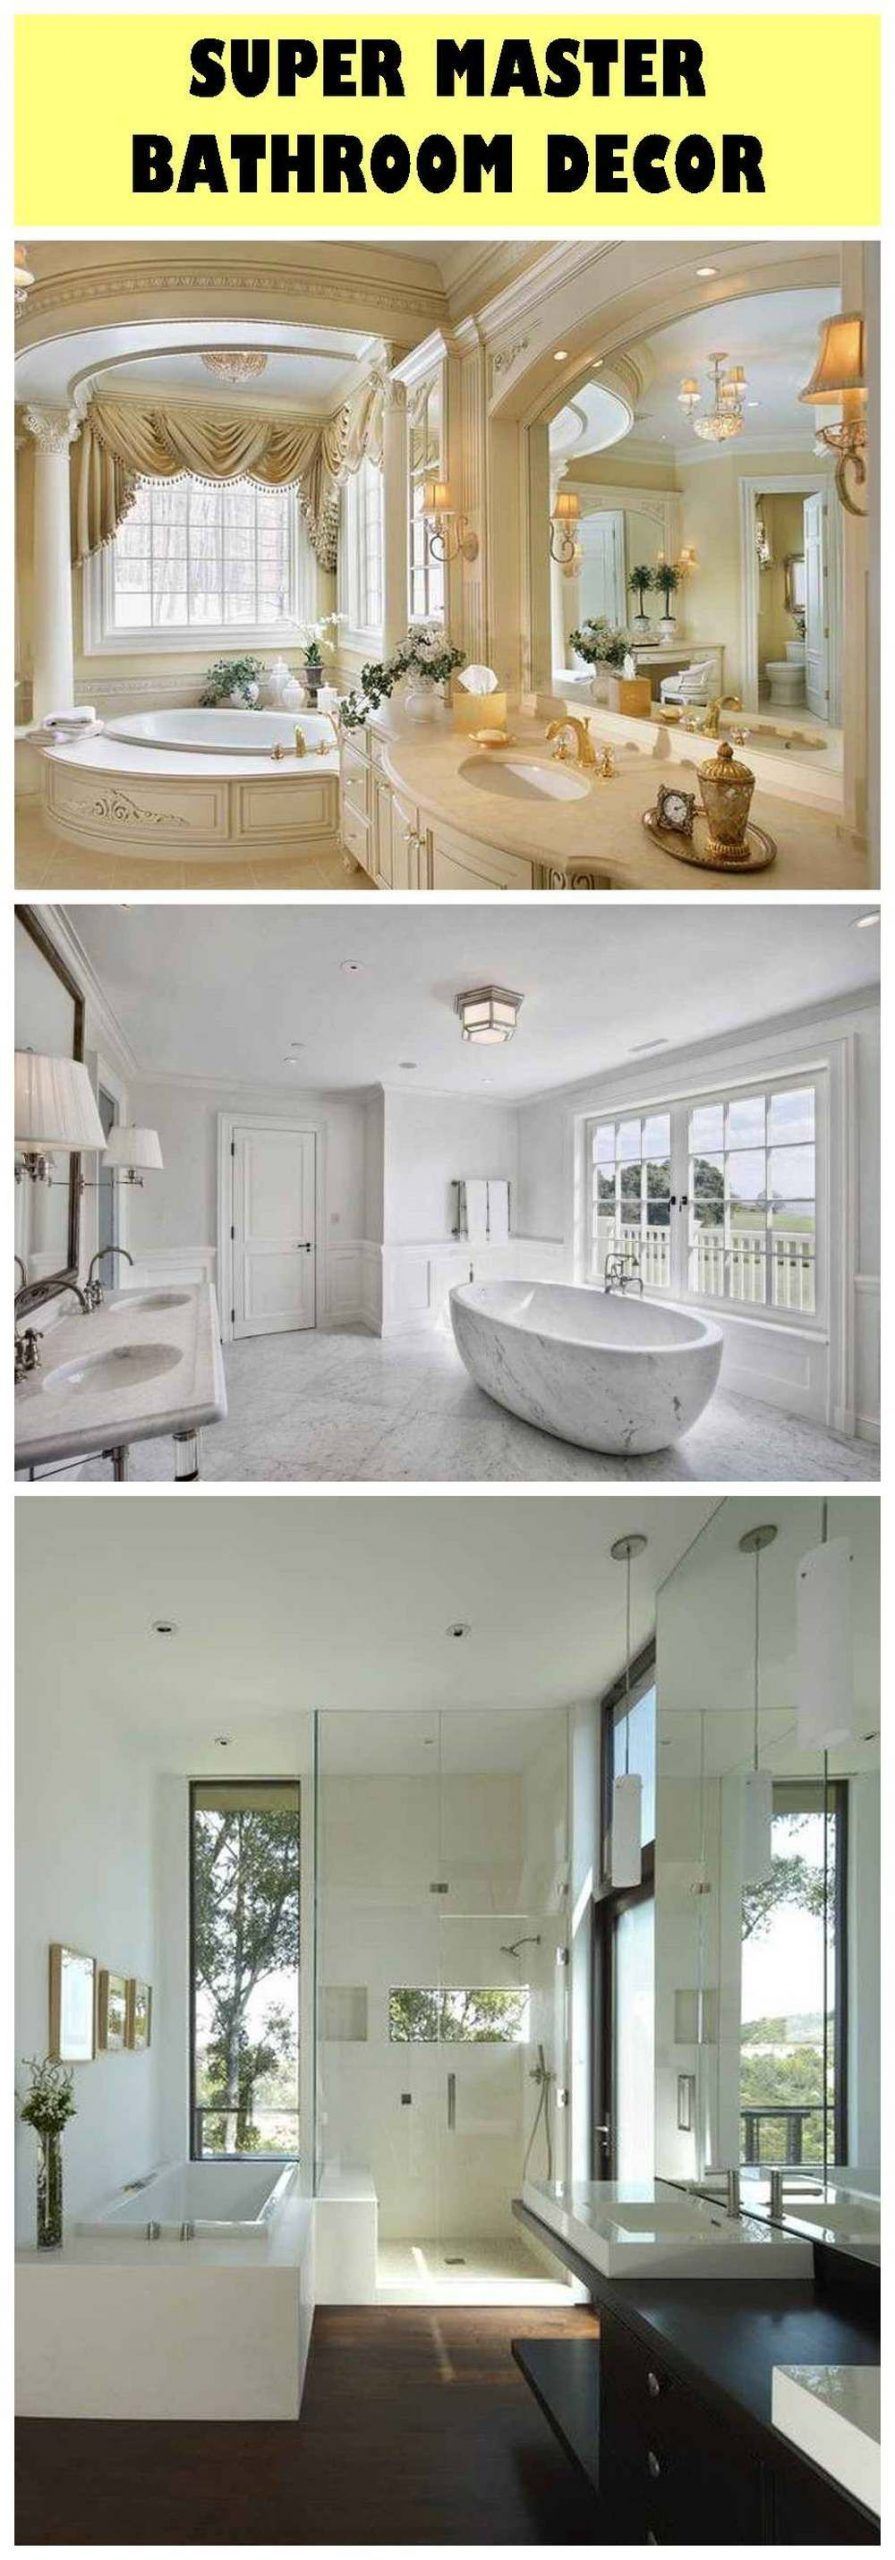 The toilet style is elegant and glamorous featuring classic a few a few ideas#classic #elegant #featuring #glamorous #ideas #style #toilet